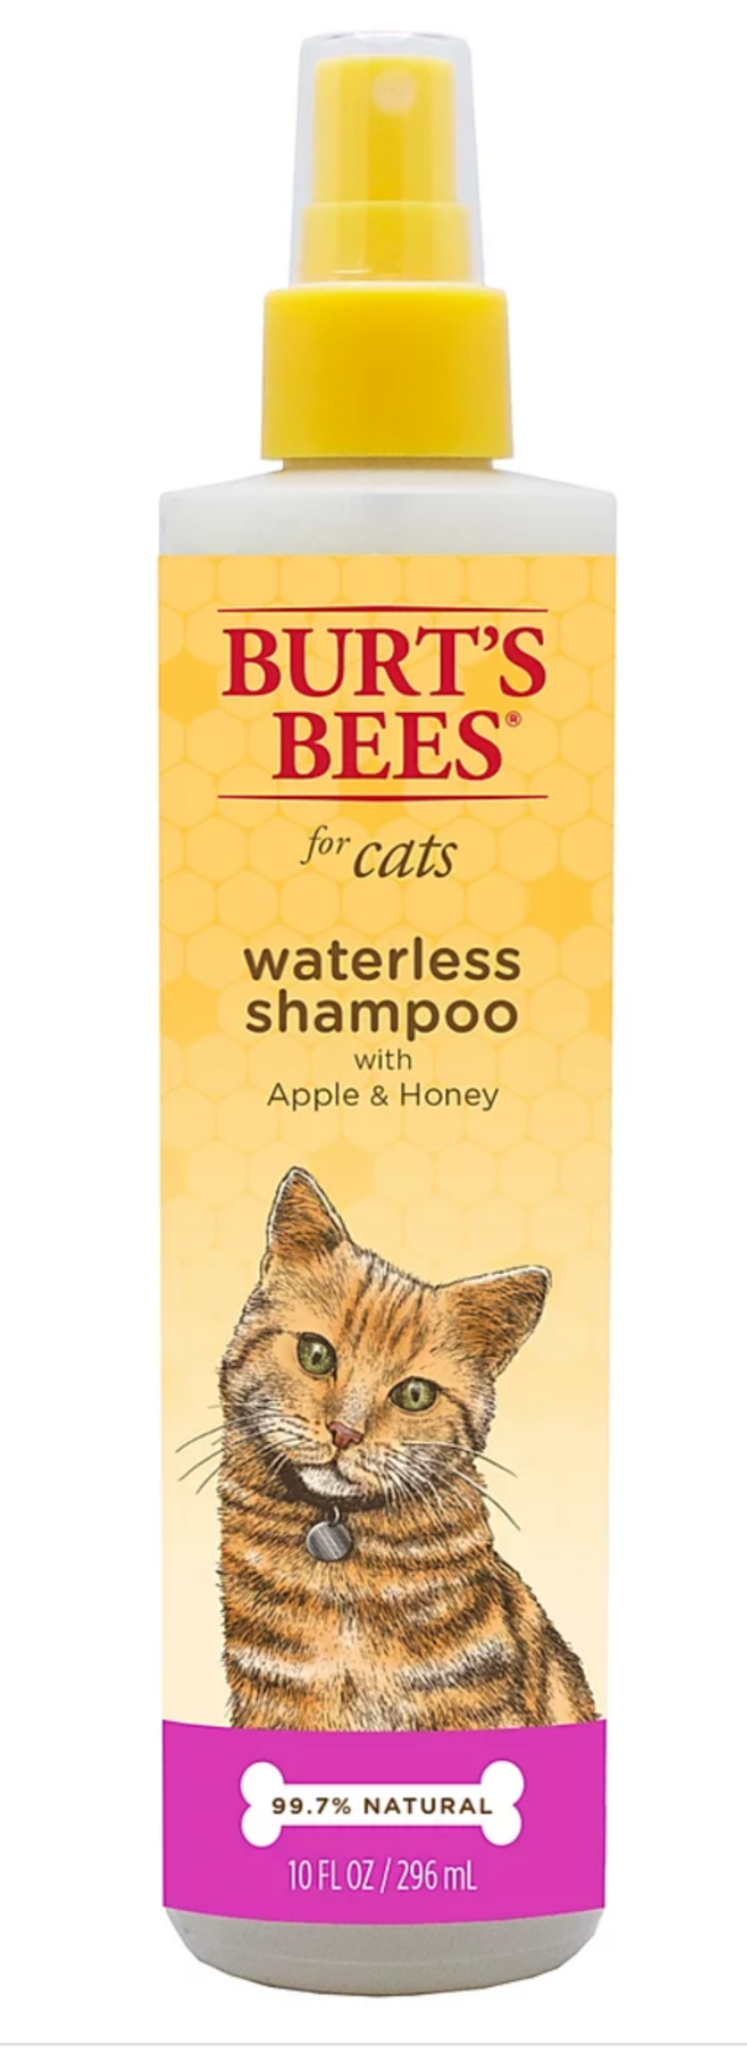 Burt's Bees Waterless Shampoo For Cats With Apple & Honey